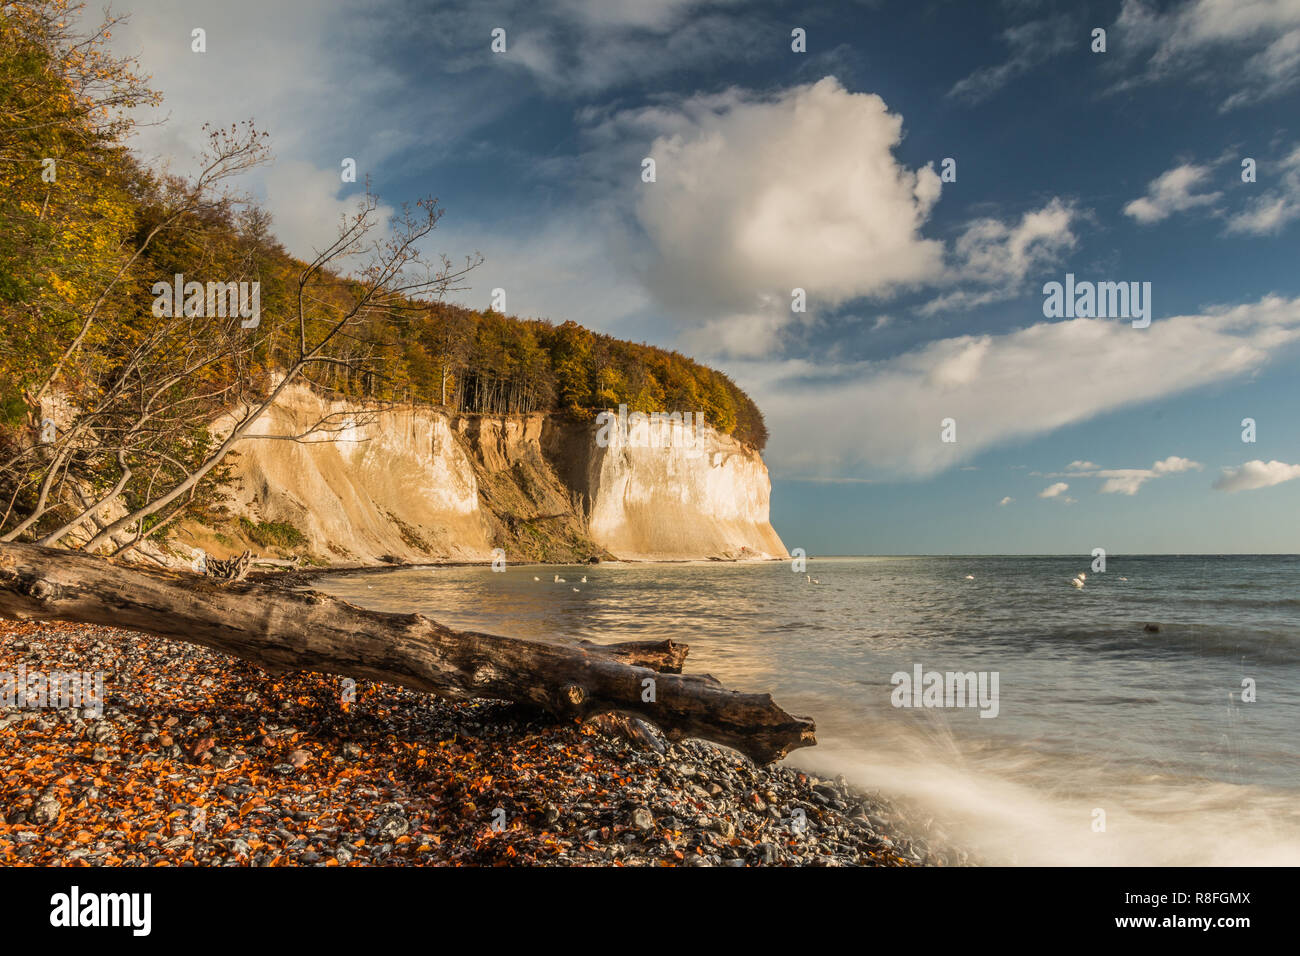 Chalk cliffs on Rügen island in the Jasmund National Park in autumn mood. Blue sky with clouds in sunshine. A dead tree trunk lies in the foreground. Stock Photo